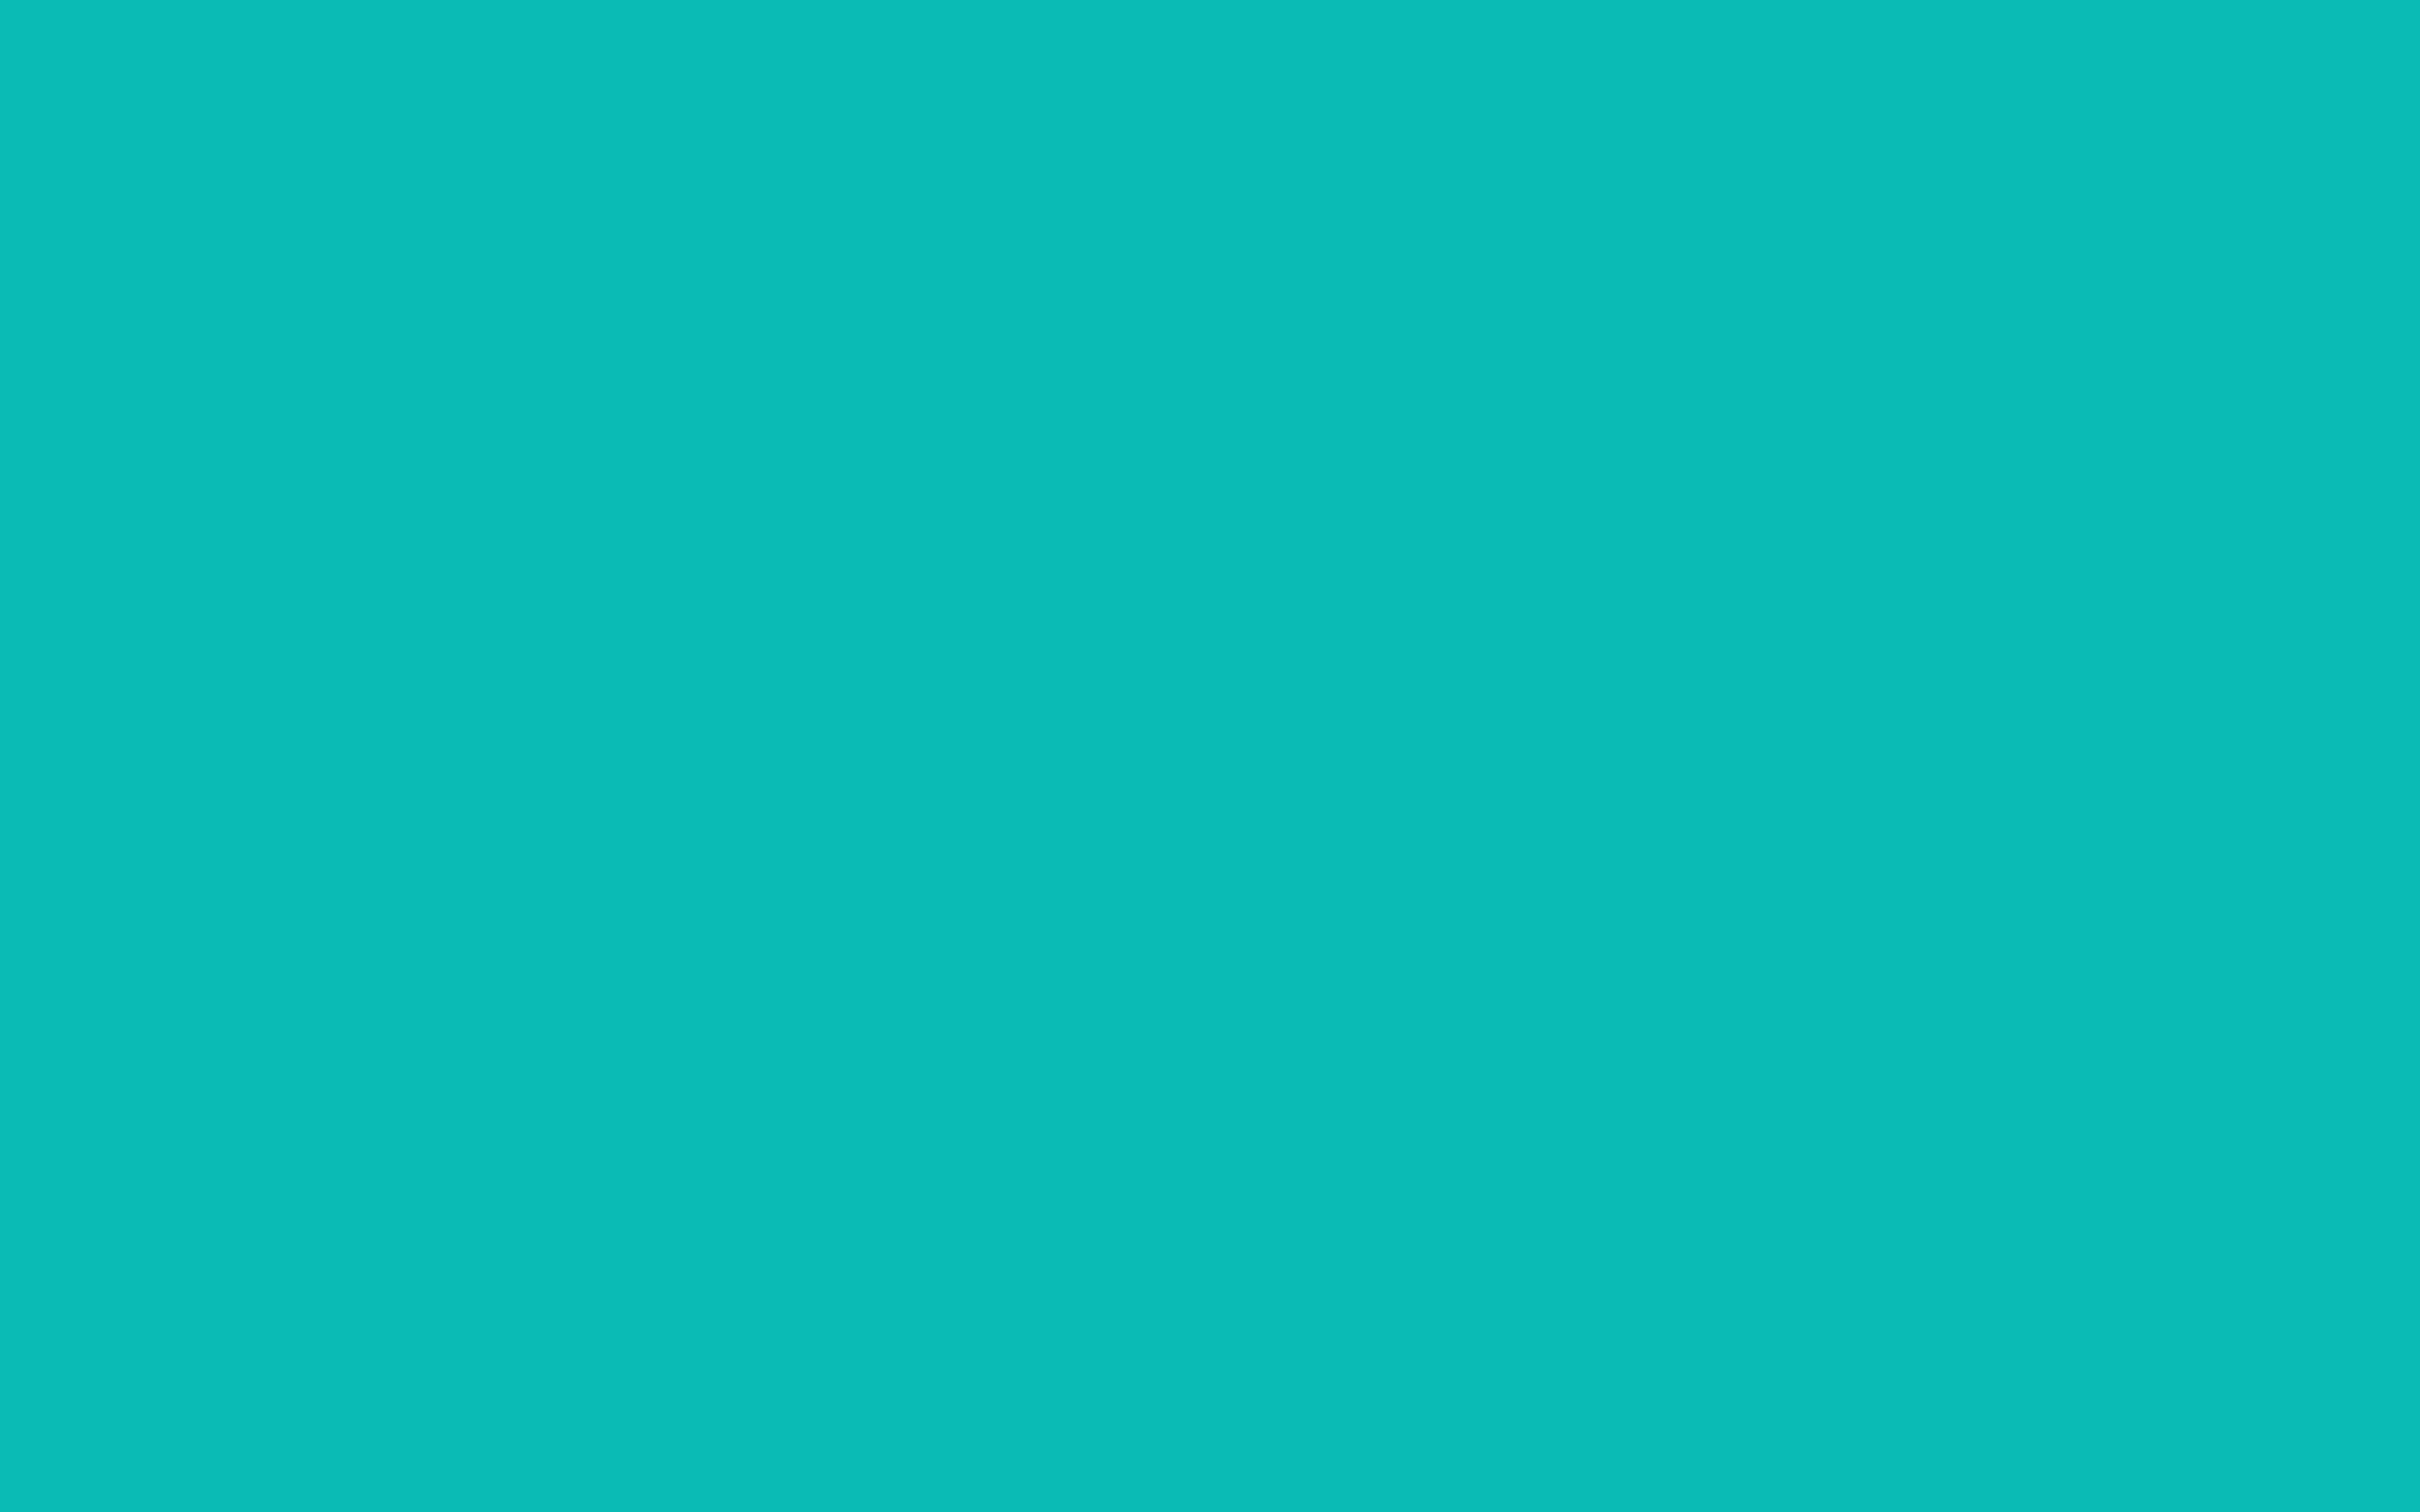 2880x1800 Solid Teal Wallpaper Elegant solid Backgrounds Colors Group 74